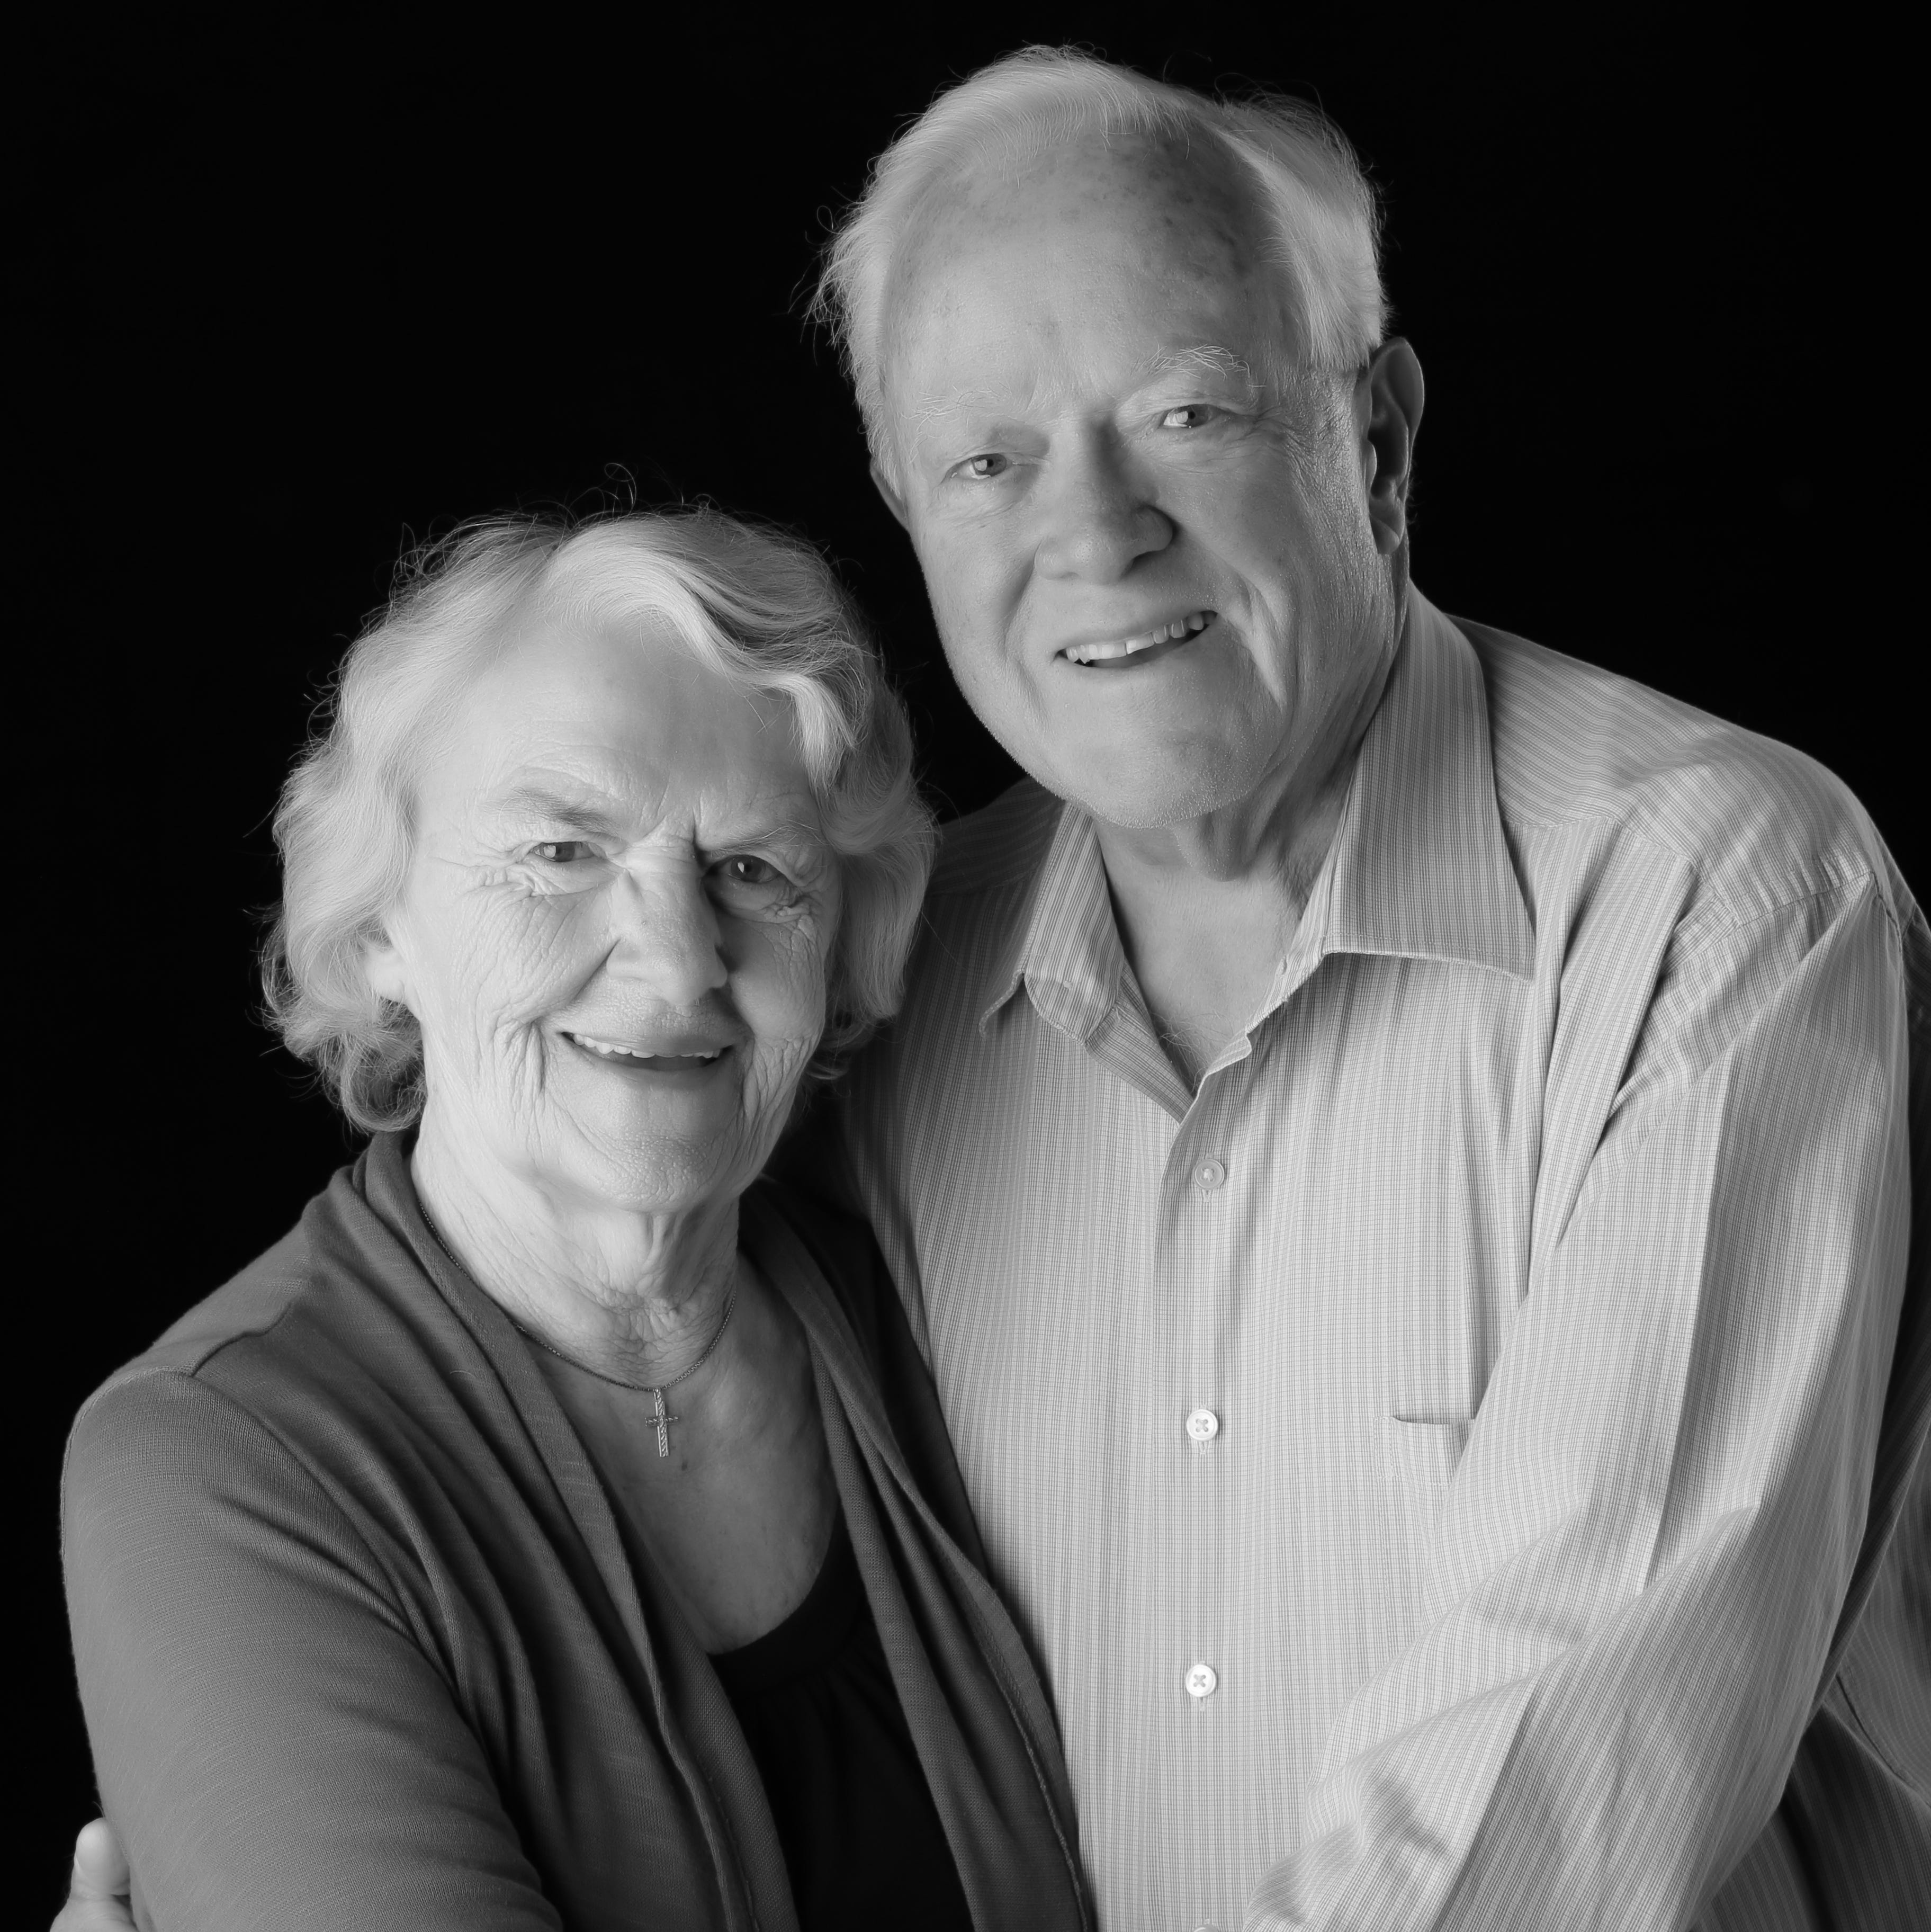 Anniversary: Mr. and Mrs. Lyman, 65 years